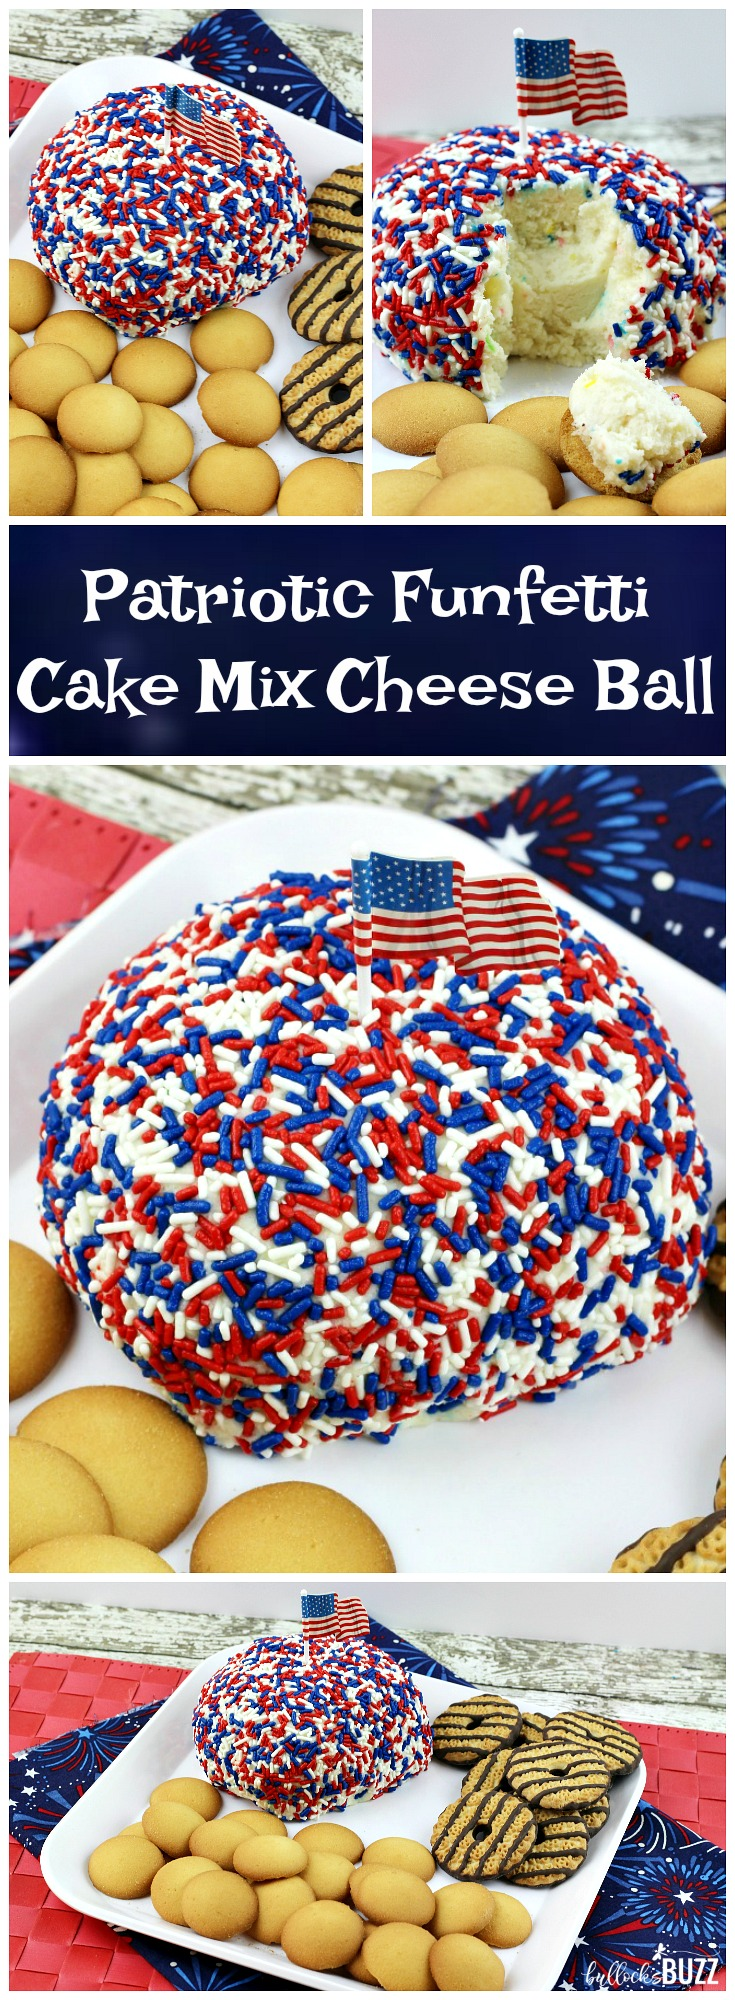 Add some sweetness to your 4th of July holiday celebration with this easy-to-make, no bake patriotic recipe! Colorful Funfetti cake mix is shaped into a ball, dipped in red, white and blue jimmies, then served as a dip in this deliciously sweet Patriotic Funfetti Cake Cheese Ball.